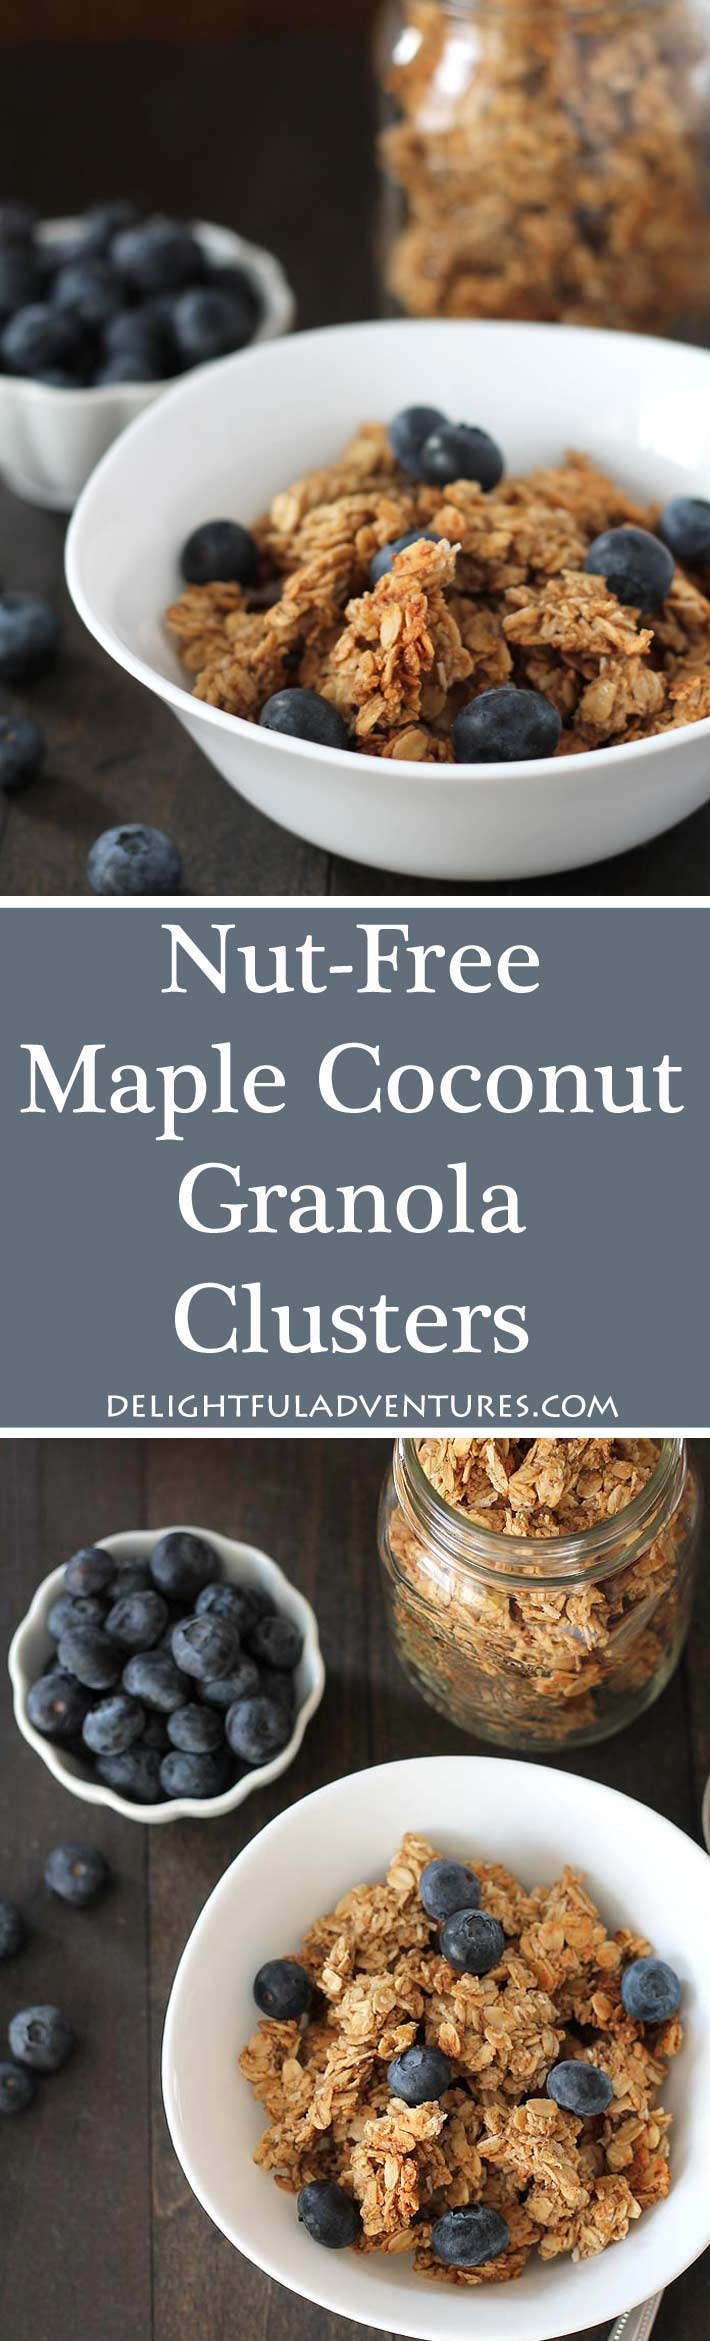 Delicious nut free maple coconut granola clusters that are perfect to have for breakfast or for snacking on in the afternoon!